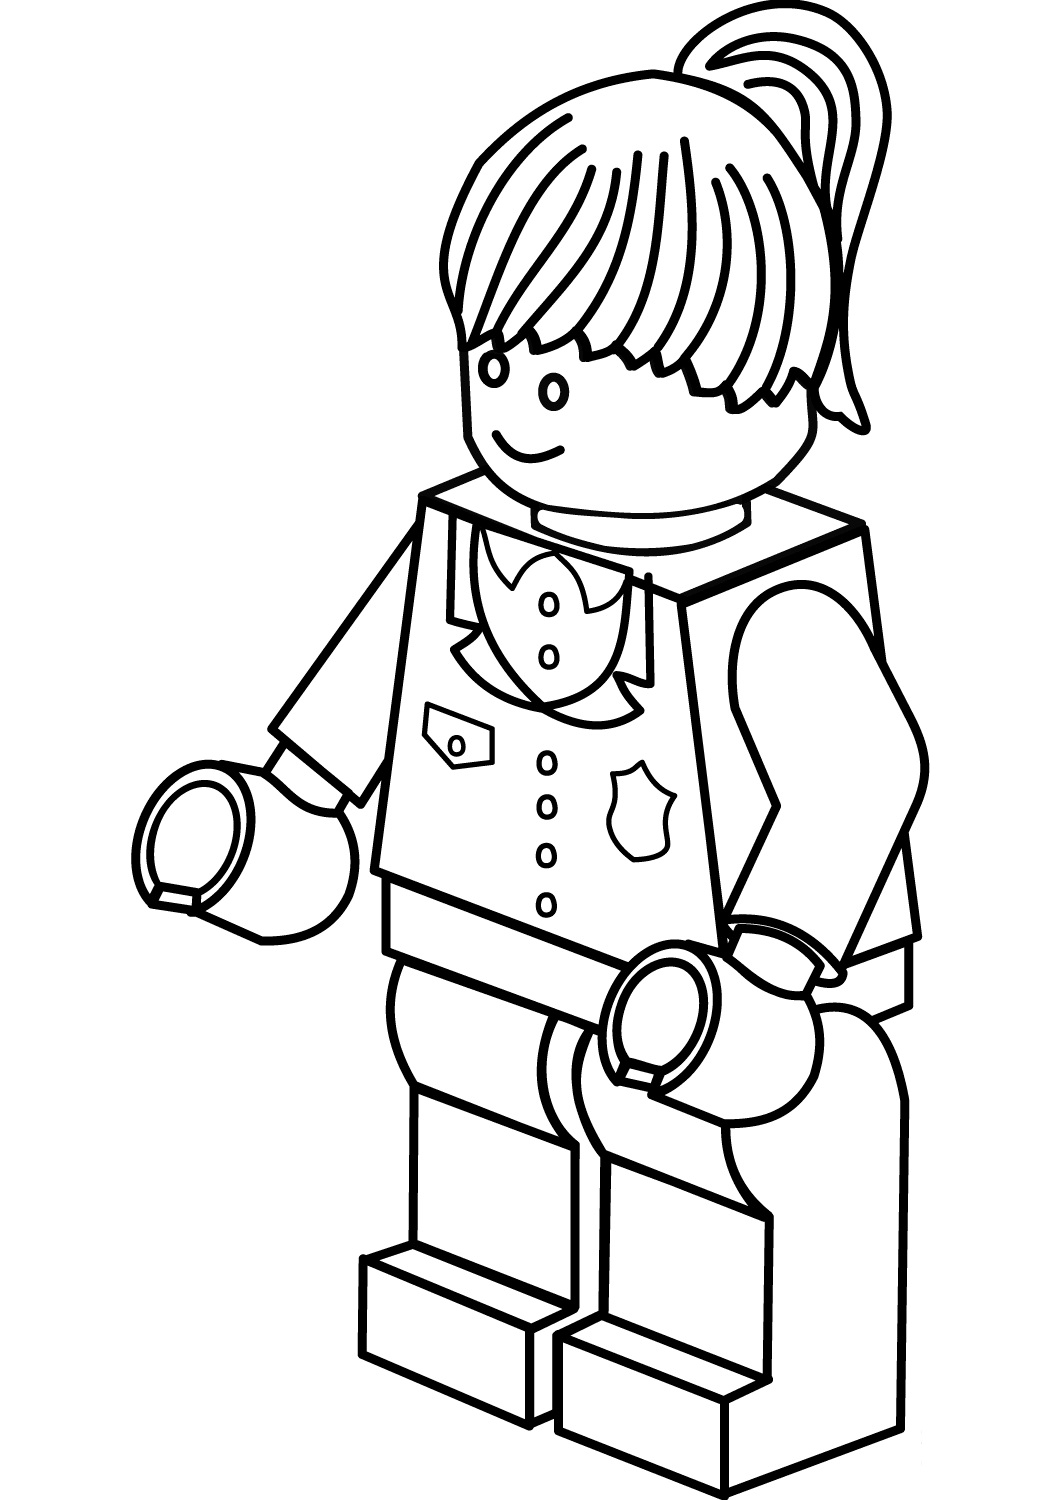 The Lego Batman Harley Quinn Coloring Page